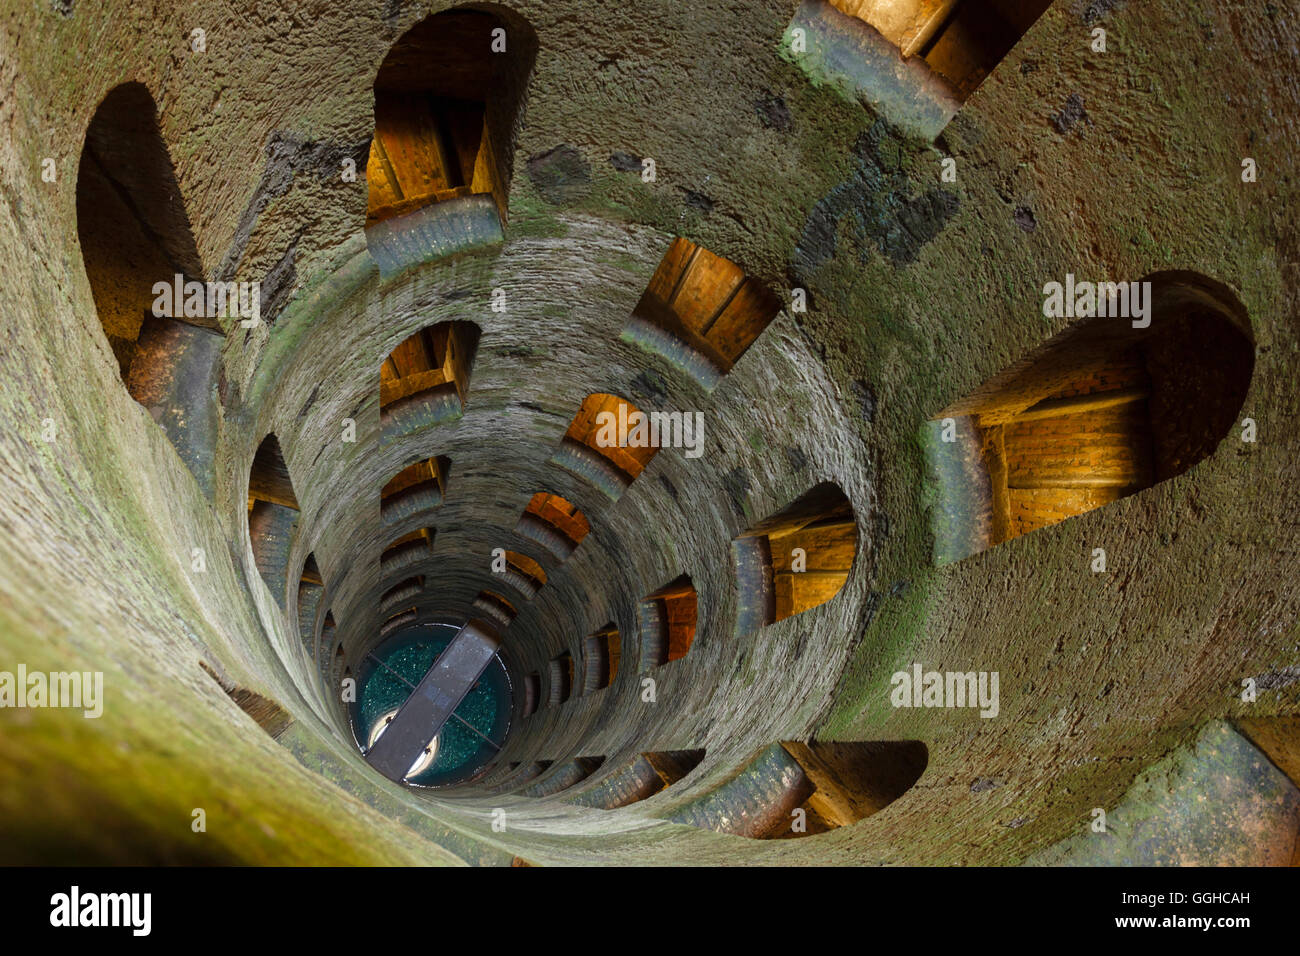 view downwards, Pozzo di San Patrizio, well, shaft, water supply, from the 16th century, architecture, double helix - Stock Image